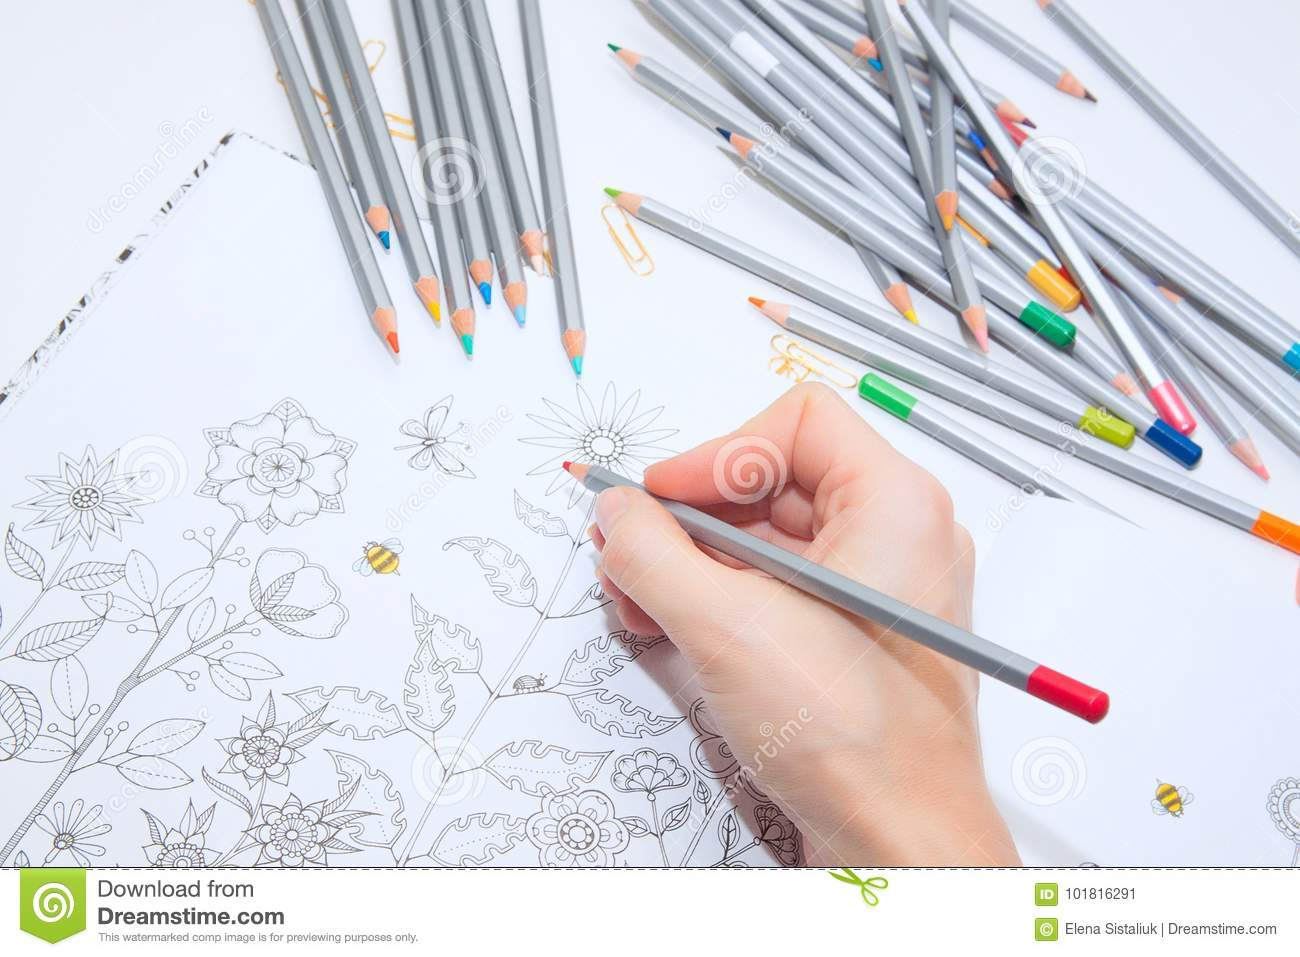 Colorer - antistress with colored pencils.Girl paints a coloring book for adults with crayons